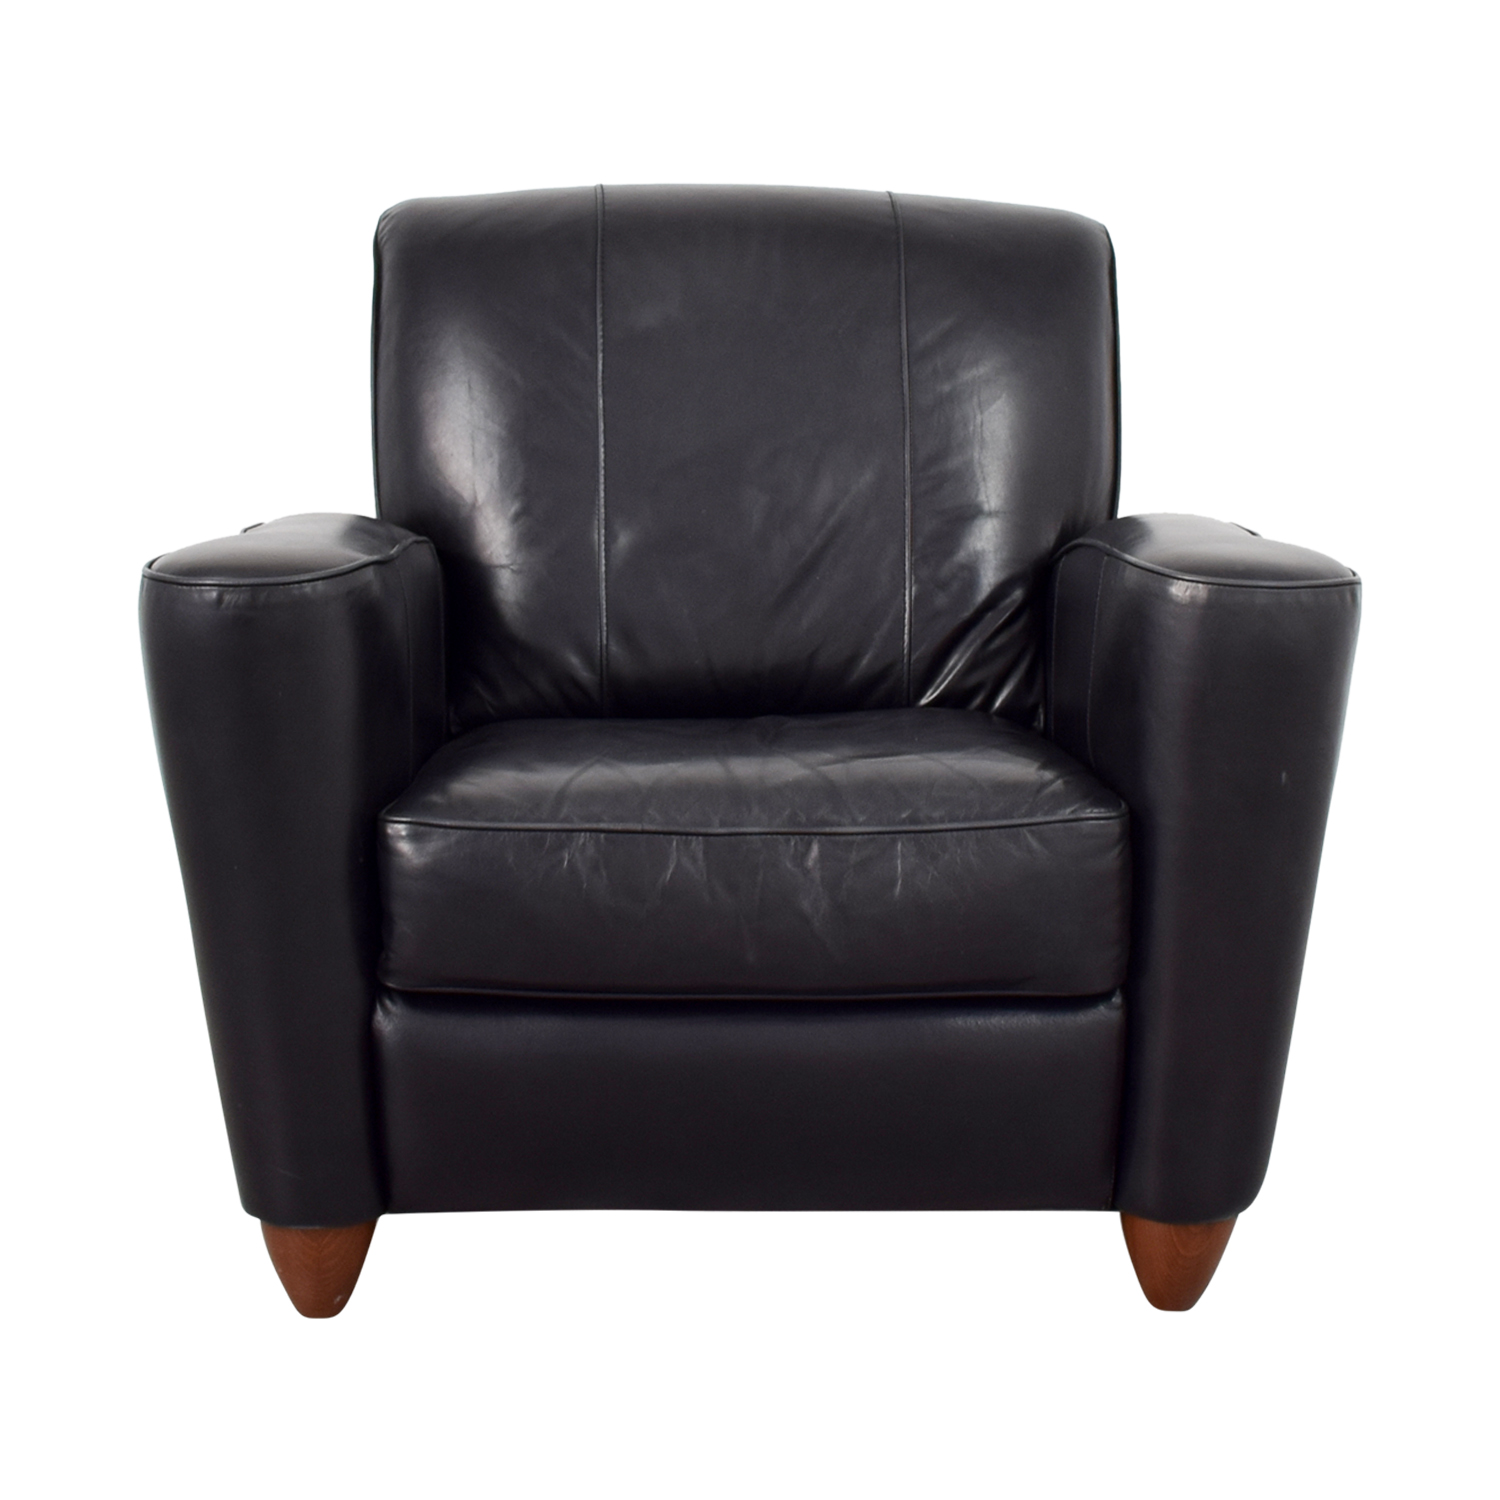 Leather Library Reading Chair For